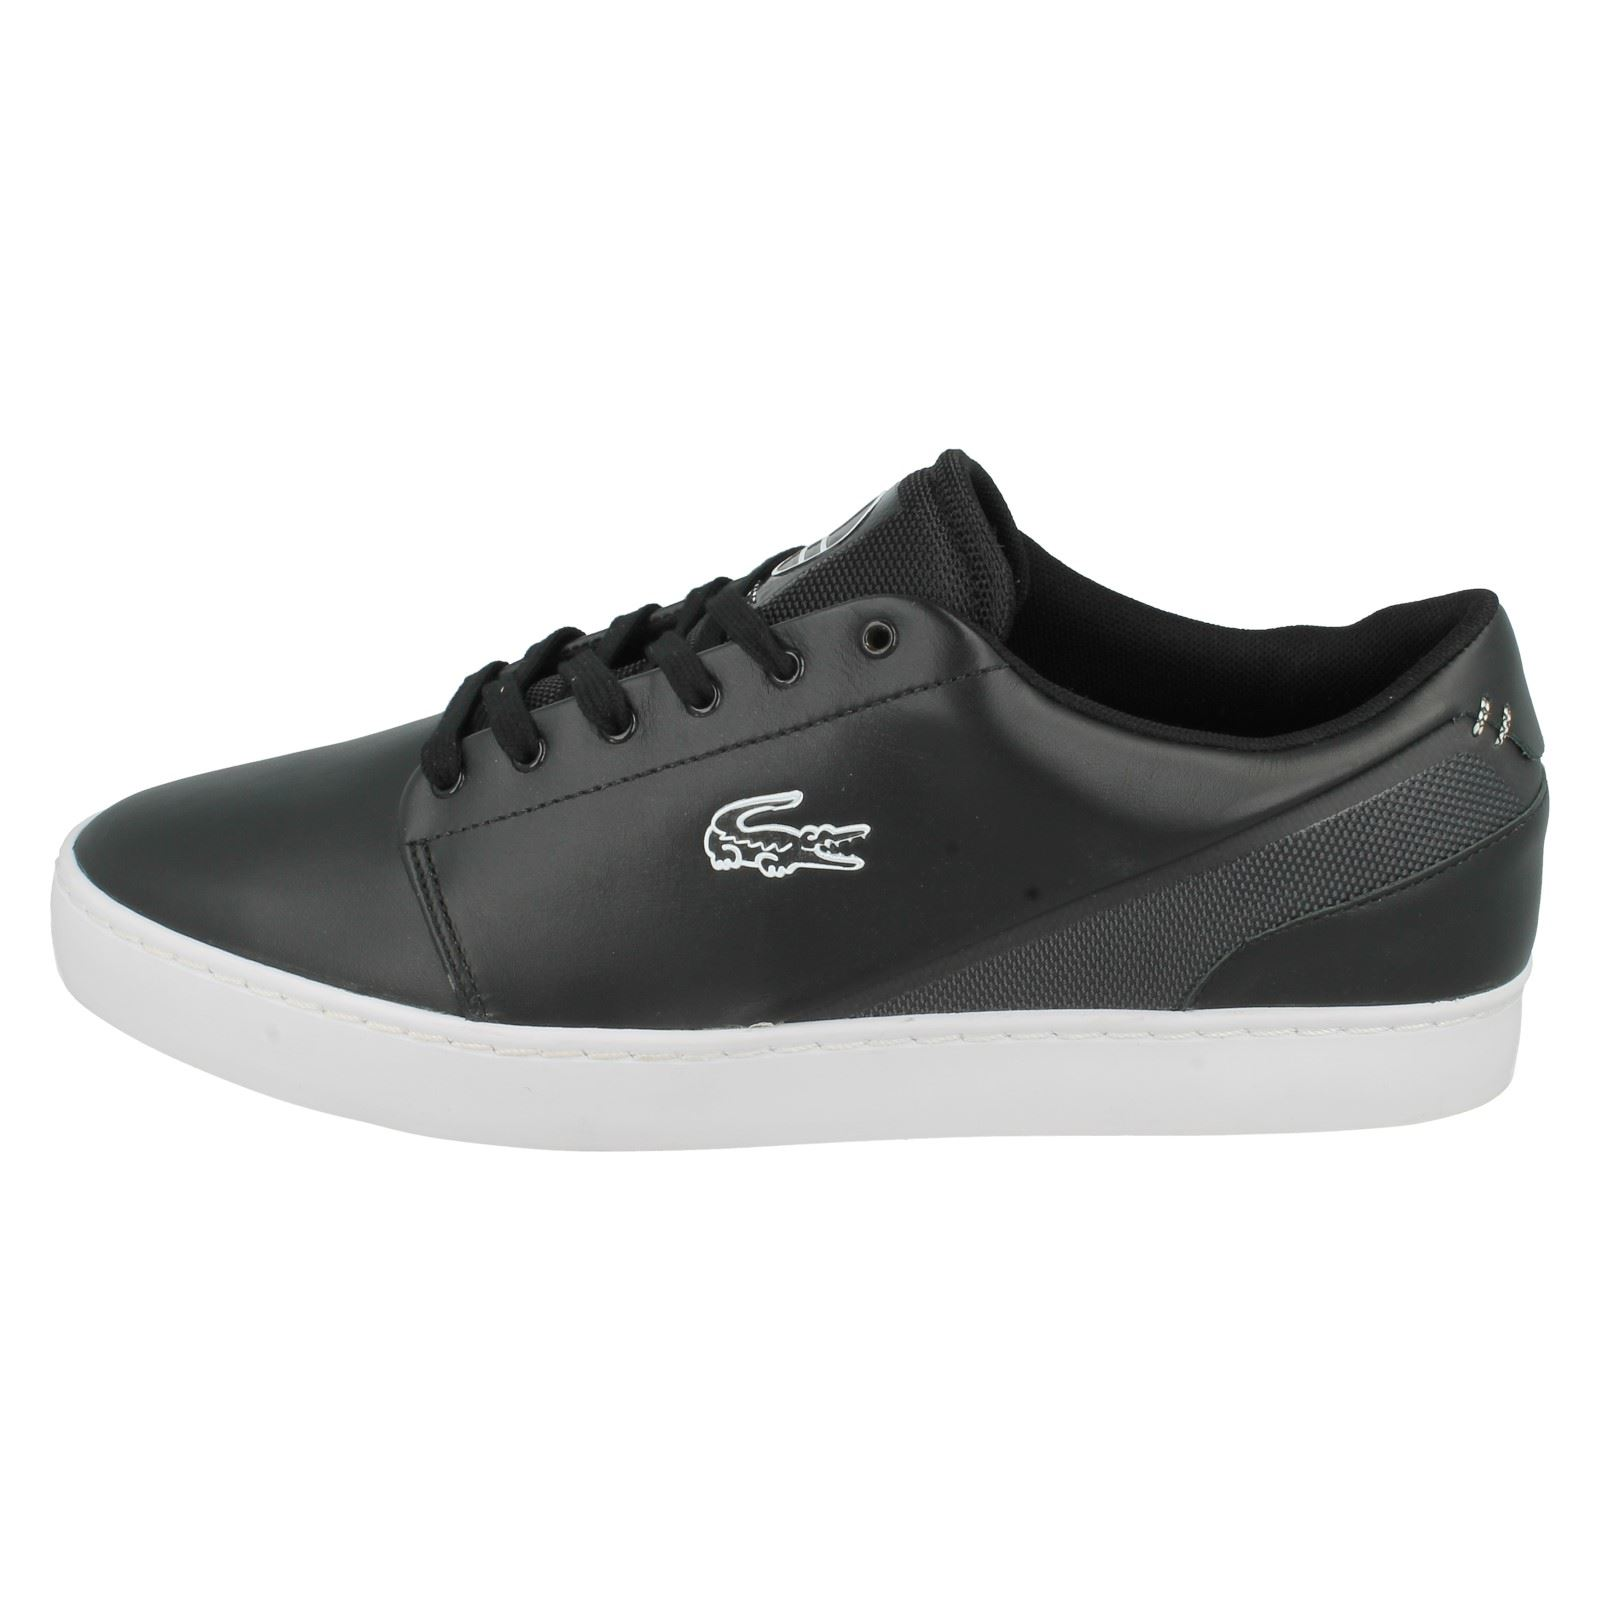 Style Gry Lacoste Mens Court Legacy Flx Ylw Blk Dk Spm Trainers fgqwqES